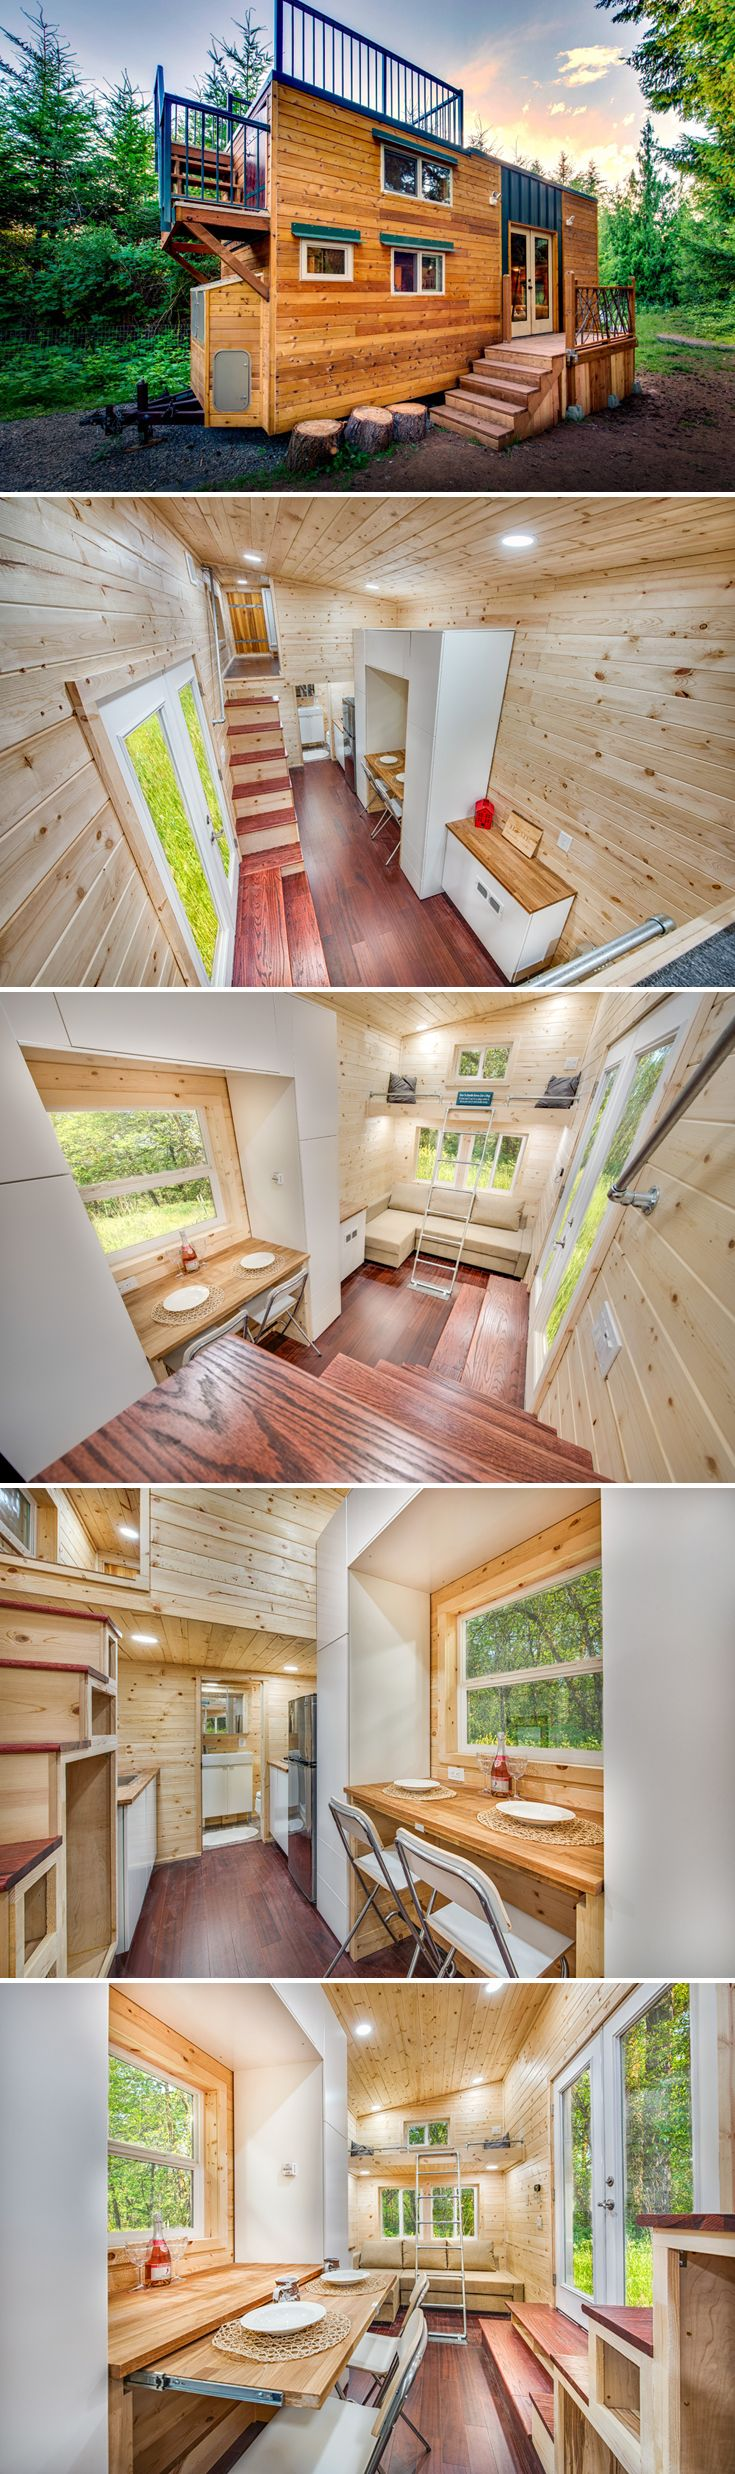 With its large rooftop deck and off-grid capabilities, the Basecamp + Green provides a great way to explore while enjoying the comforts of home.